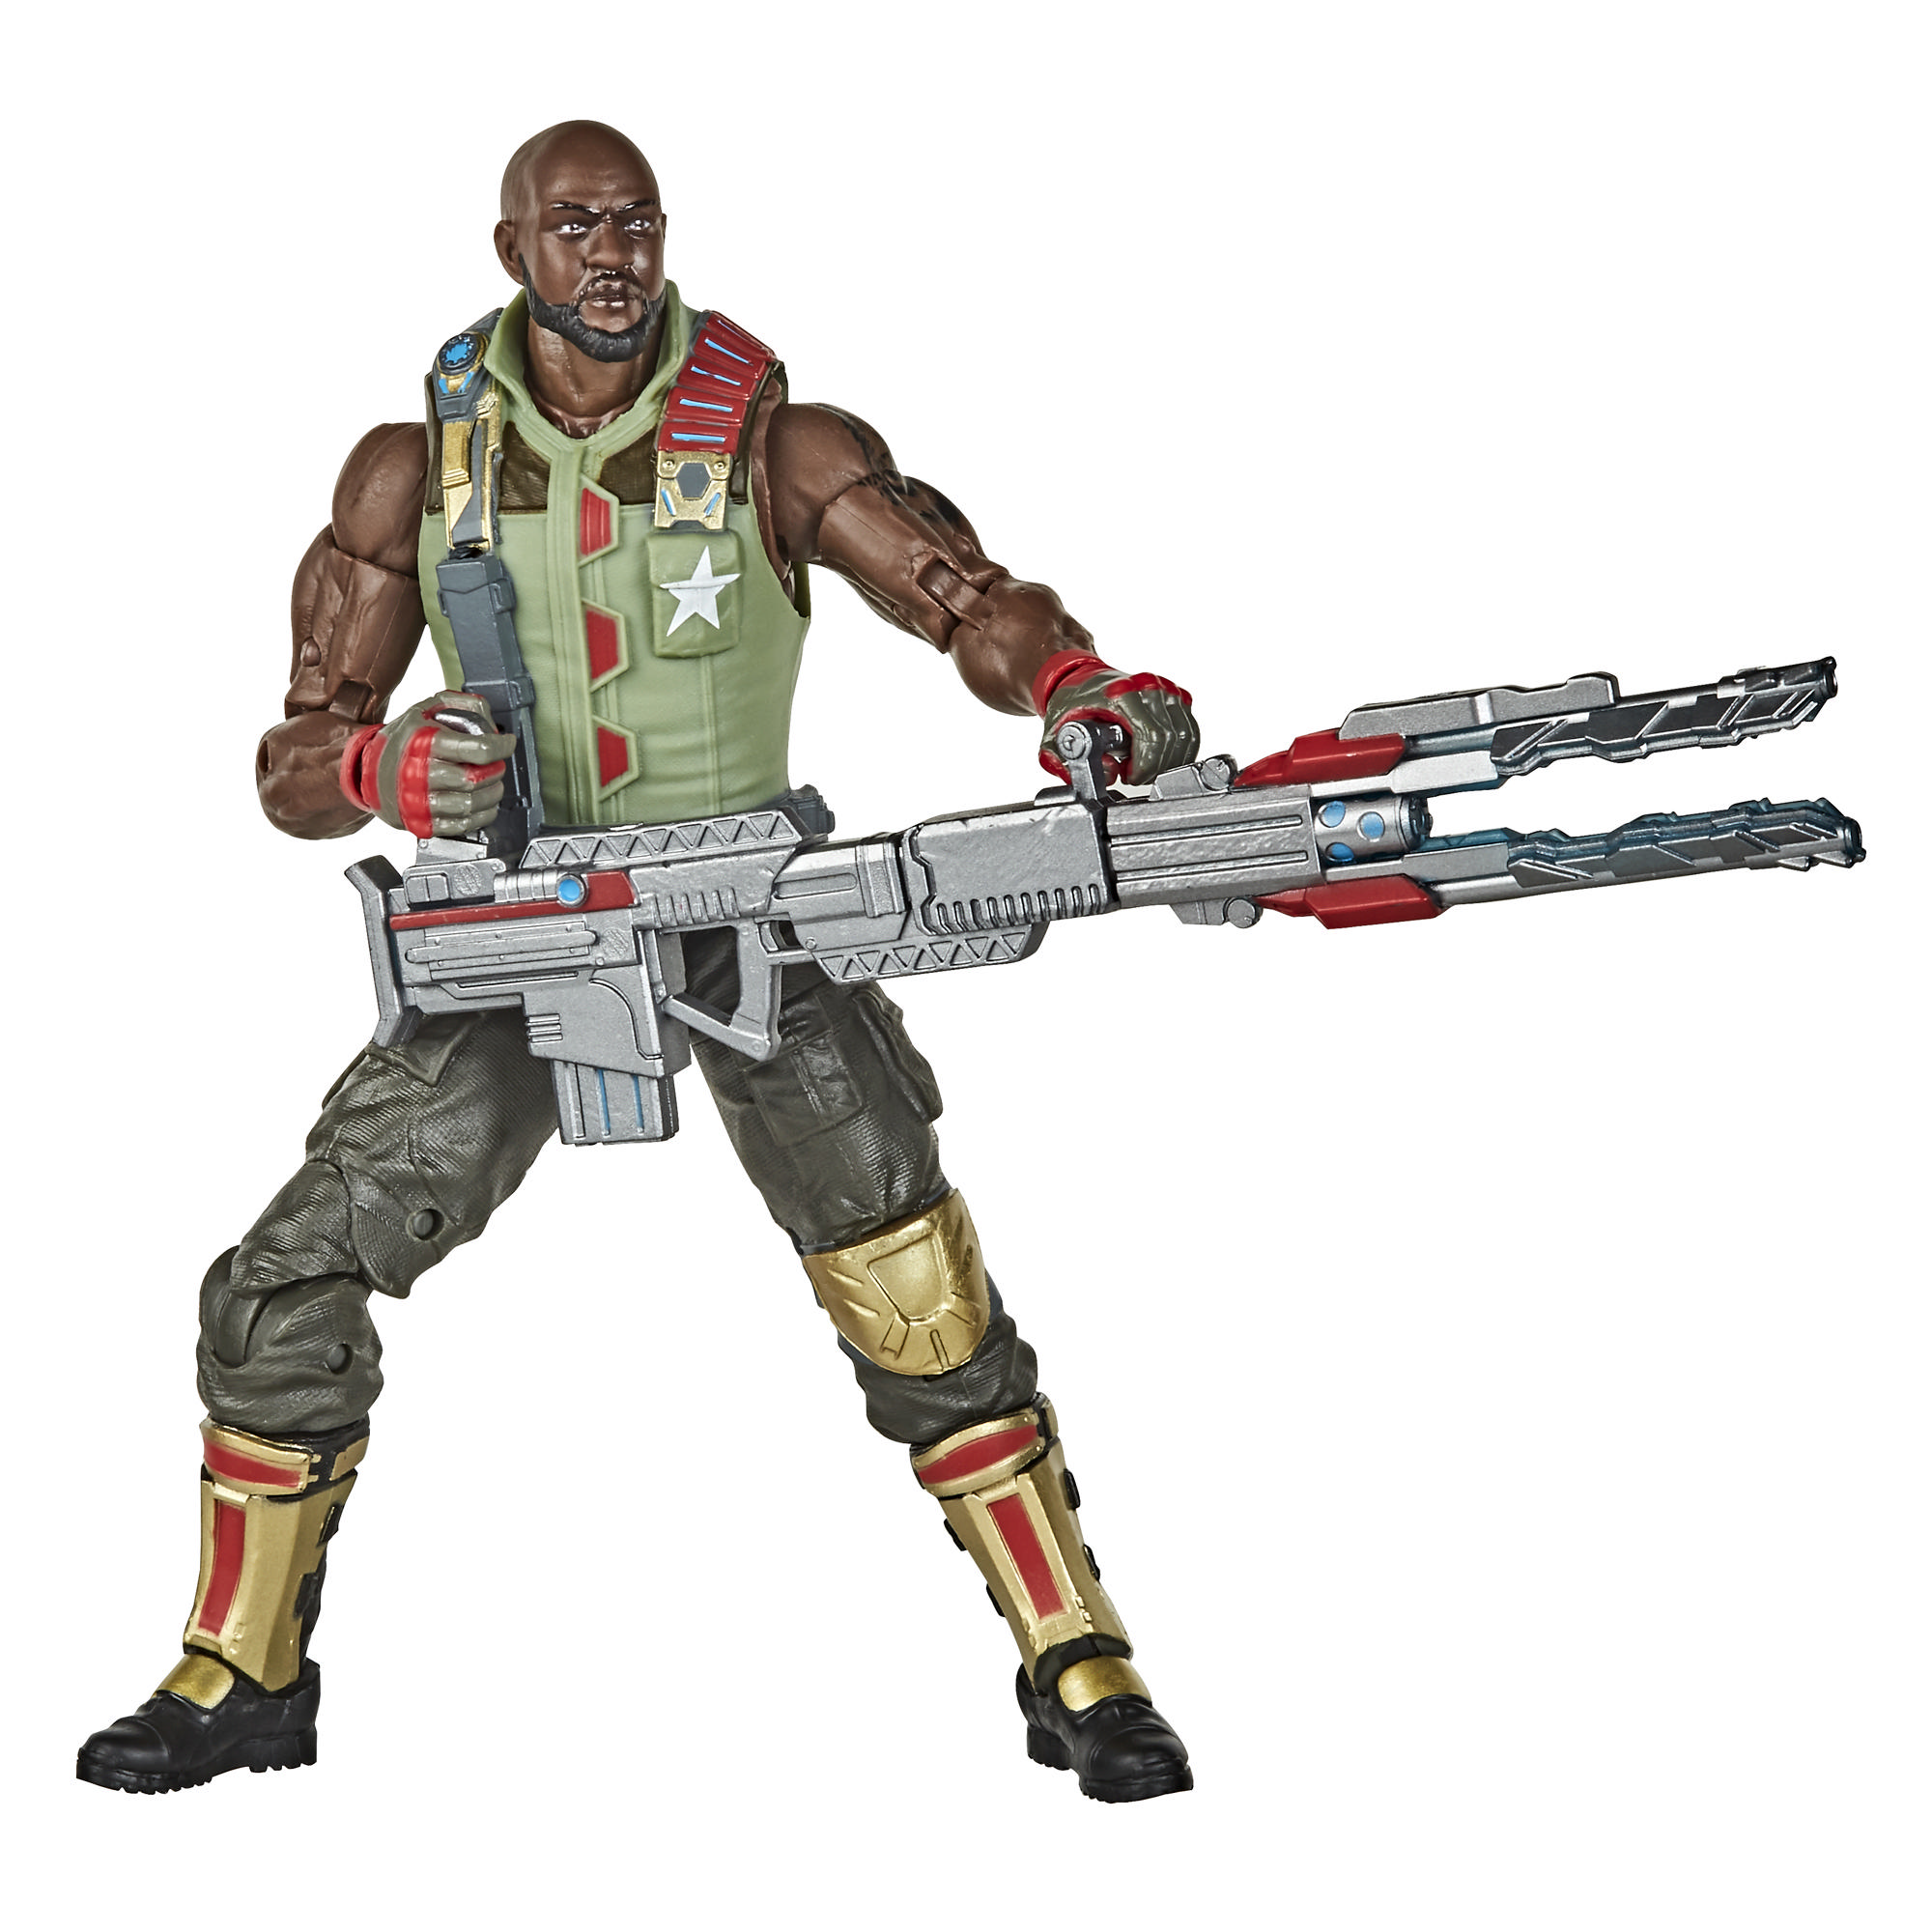 G.I. Joe Classified Series Roadblock Action Figure 01 Collectible Toy with Multiple Accessories